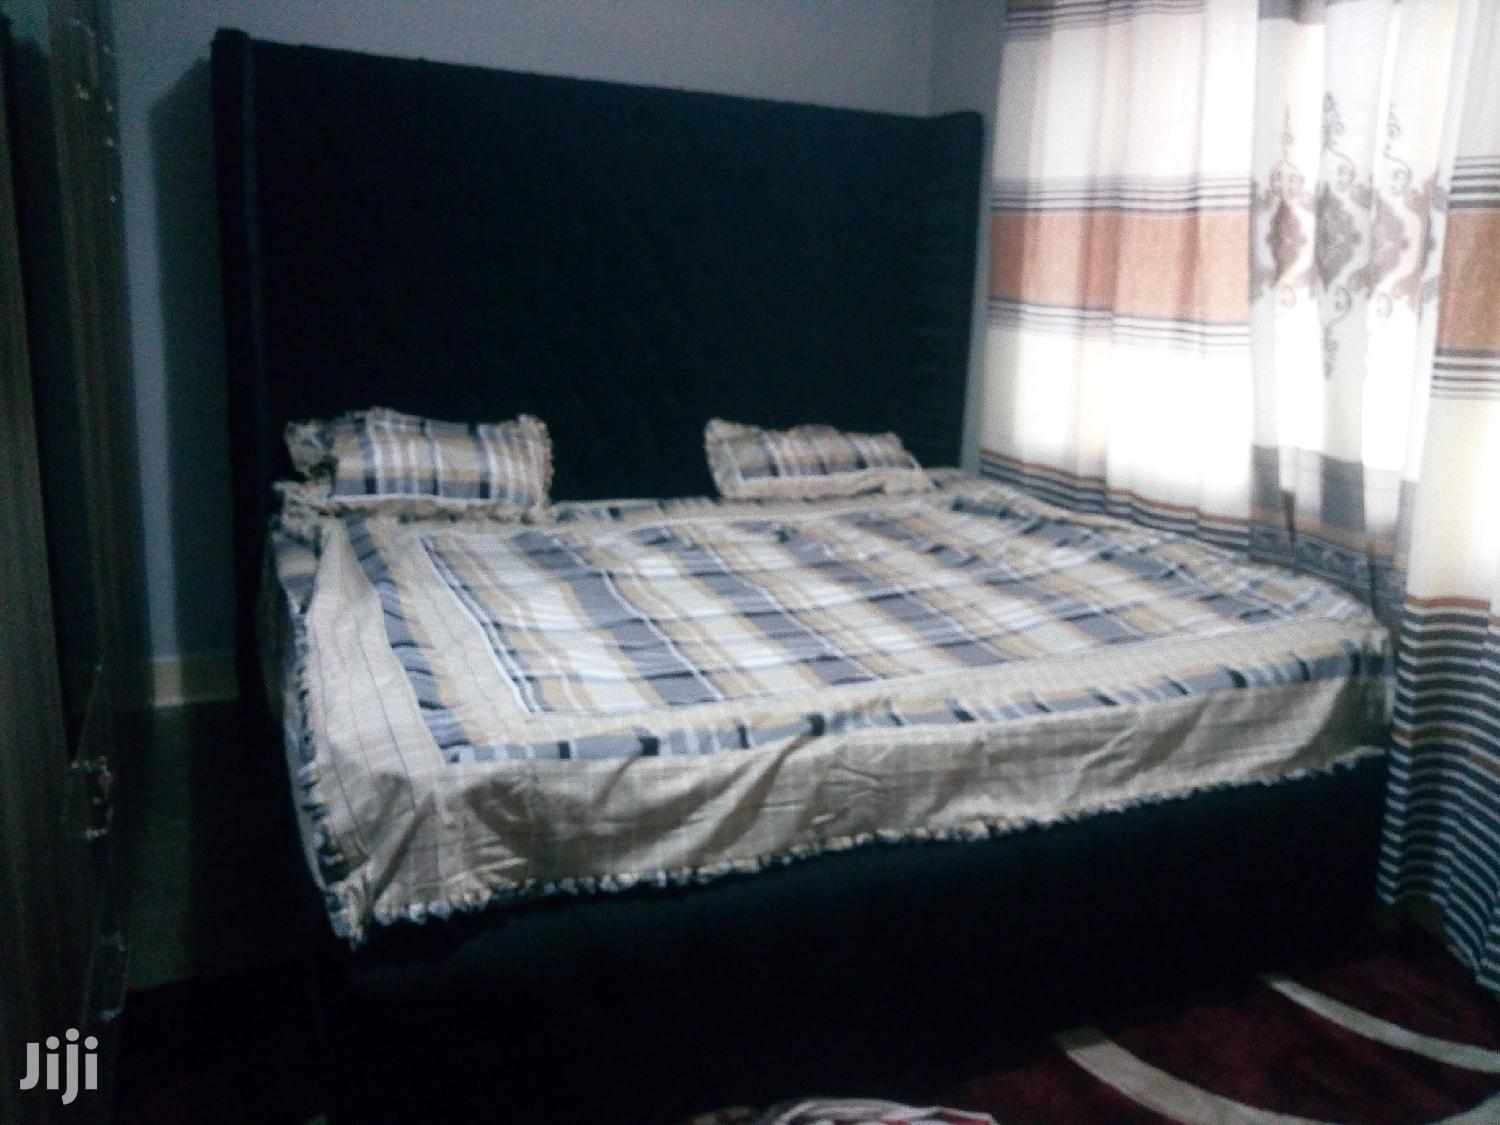 6 by 6 Bed | Furniture for sale in Kampala, Central Region, Uganda